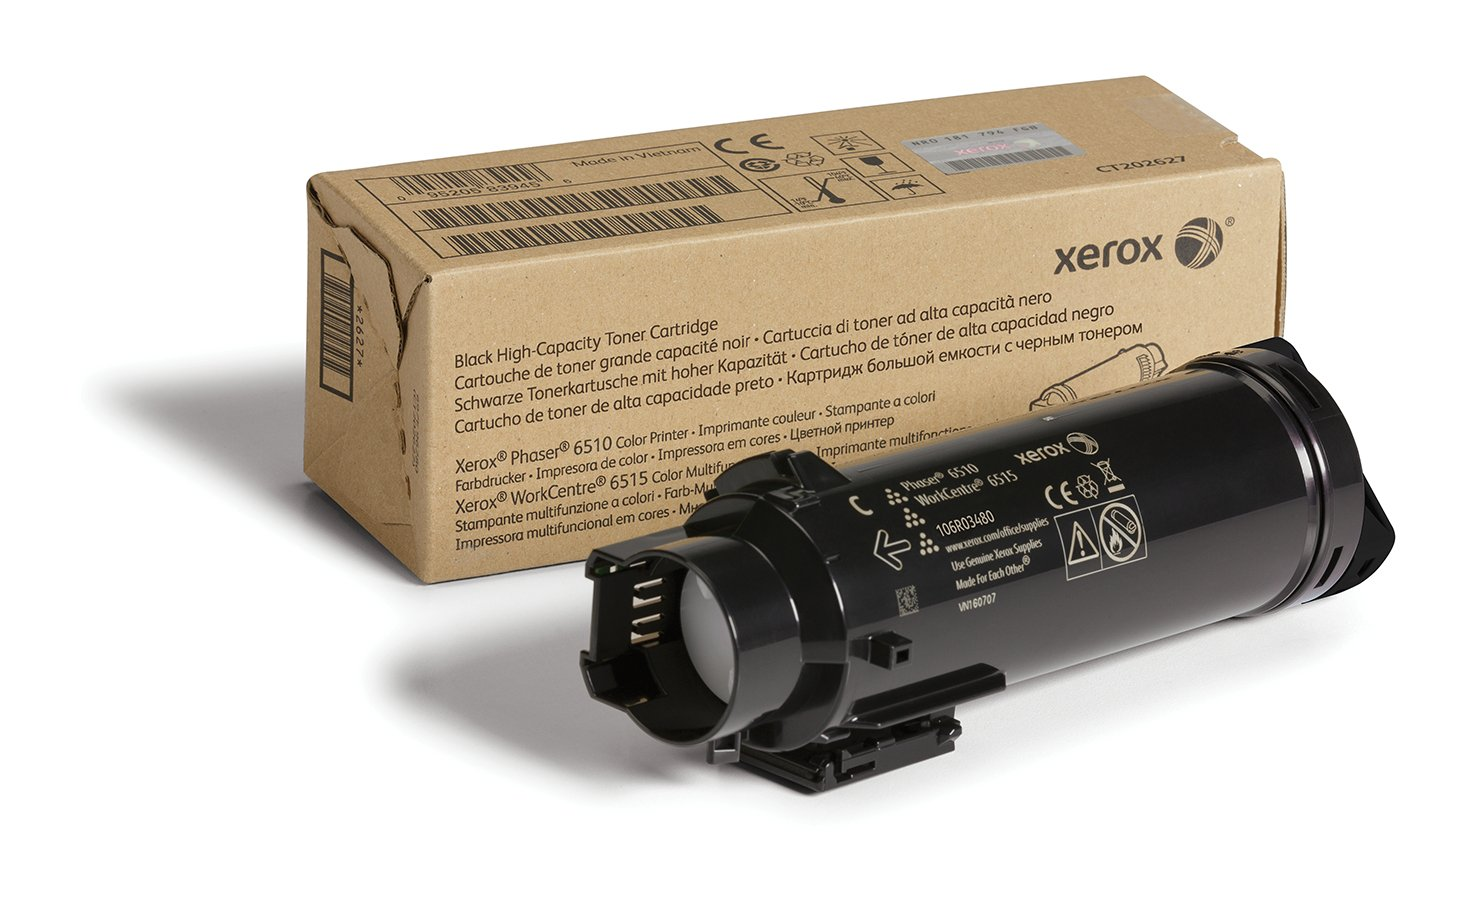 106R03480 Xerox Genuine Phaser 6510//WorkCentre 6515 Black High Capacity Toner Cartridge 5,500 Pages